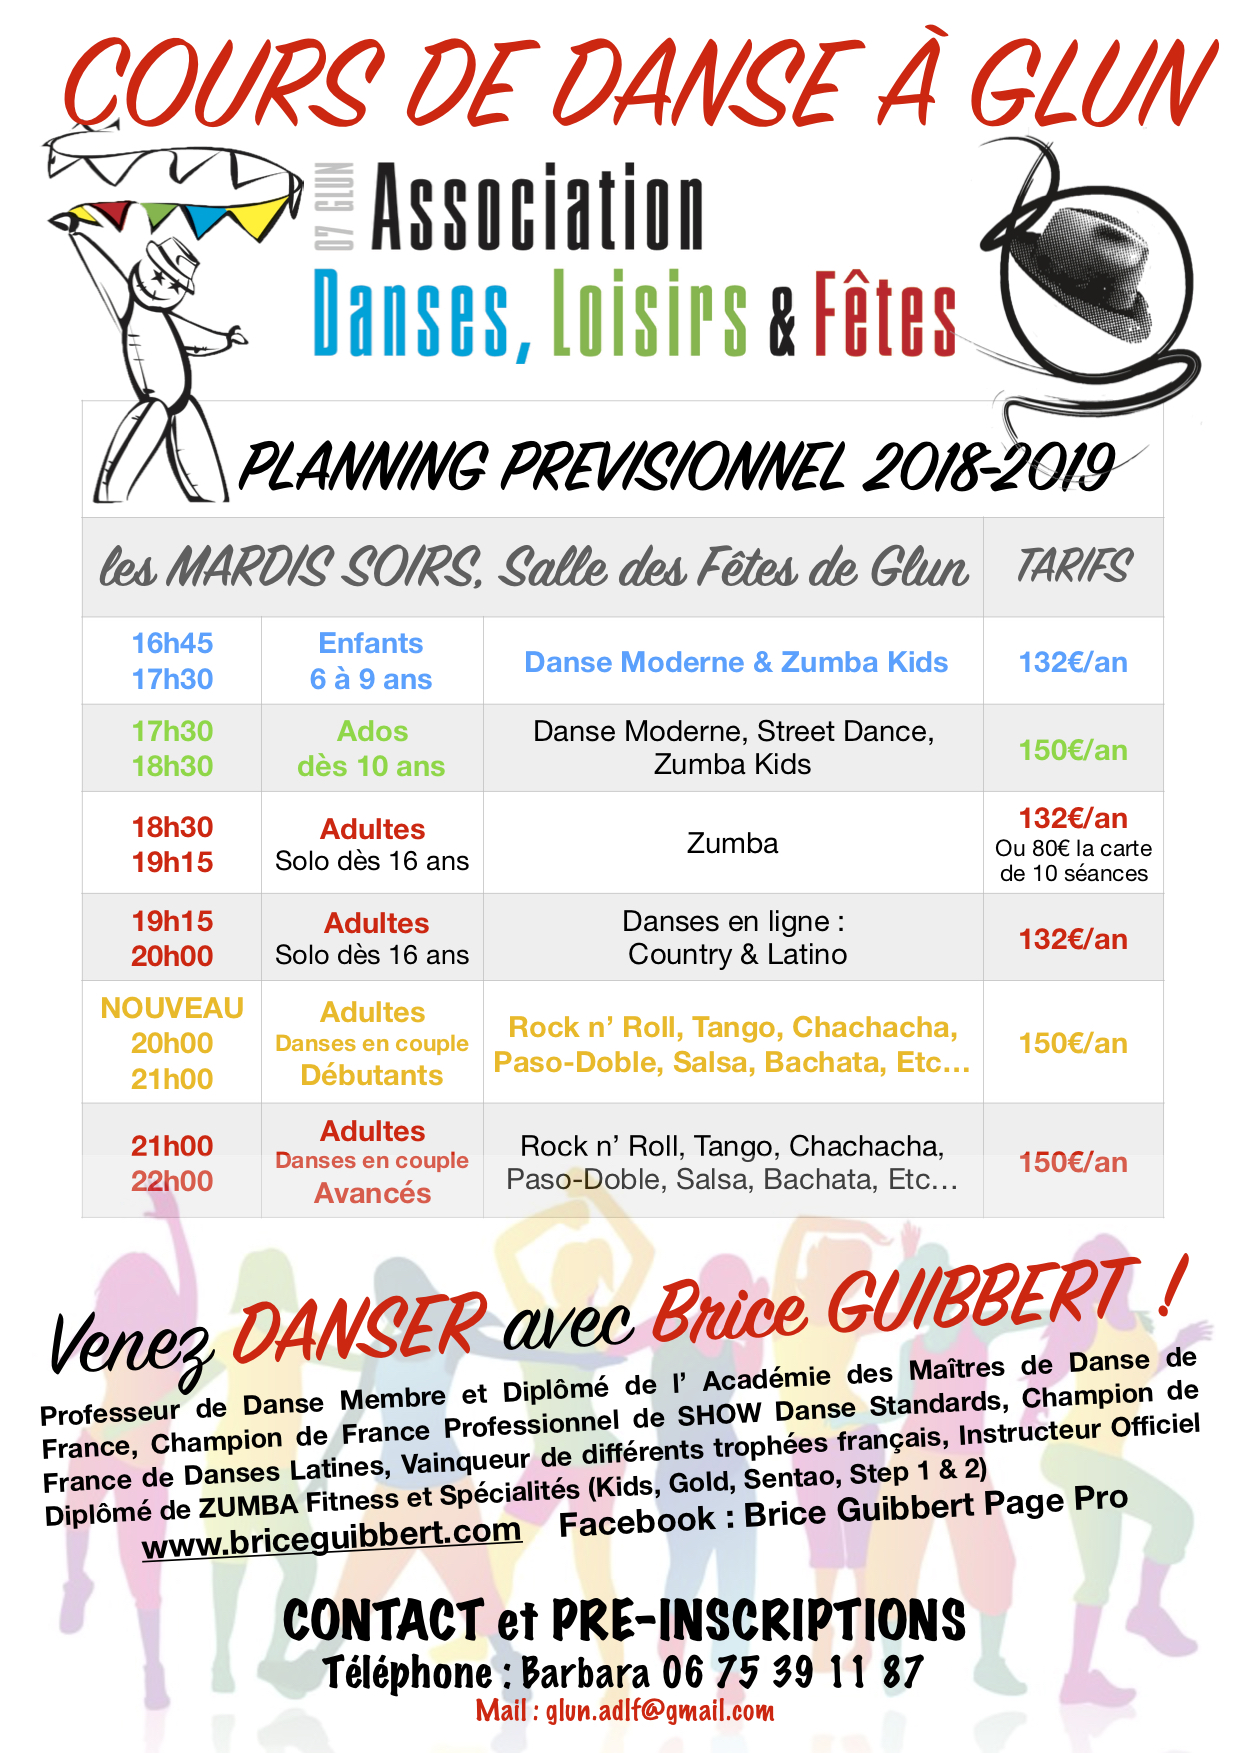 Planning Prévisionnel GLUN 2018 2019 JPEG